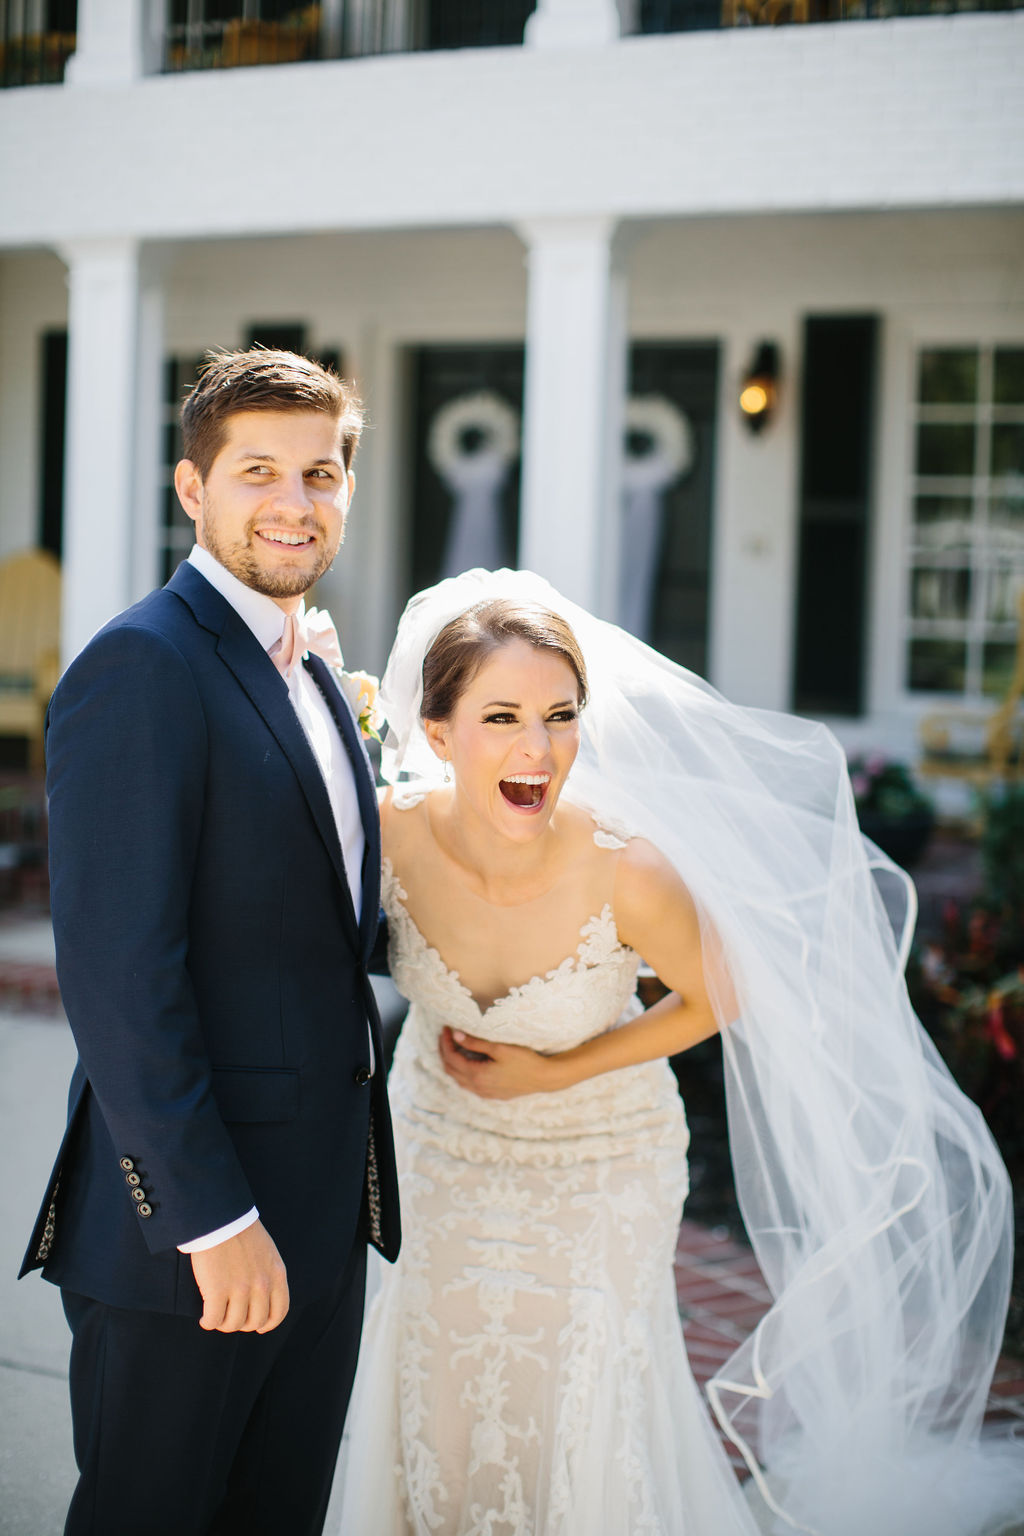 Fun Bride Laughing with Groom Portrait, Bride in Romantic Watters Lace and Illusion Neckline Wedding Dress with Full Length Veil, Groom in Blue Suit with Blush Pink Bowtie | Tampa Bay Wedding Hair and Makeup Femme Akoi Beauty Studio